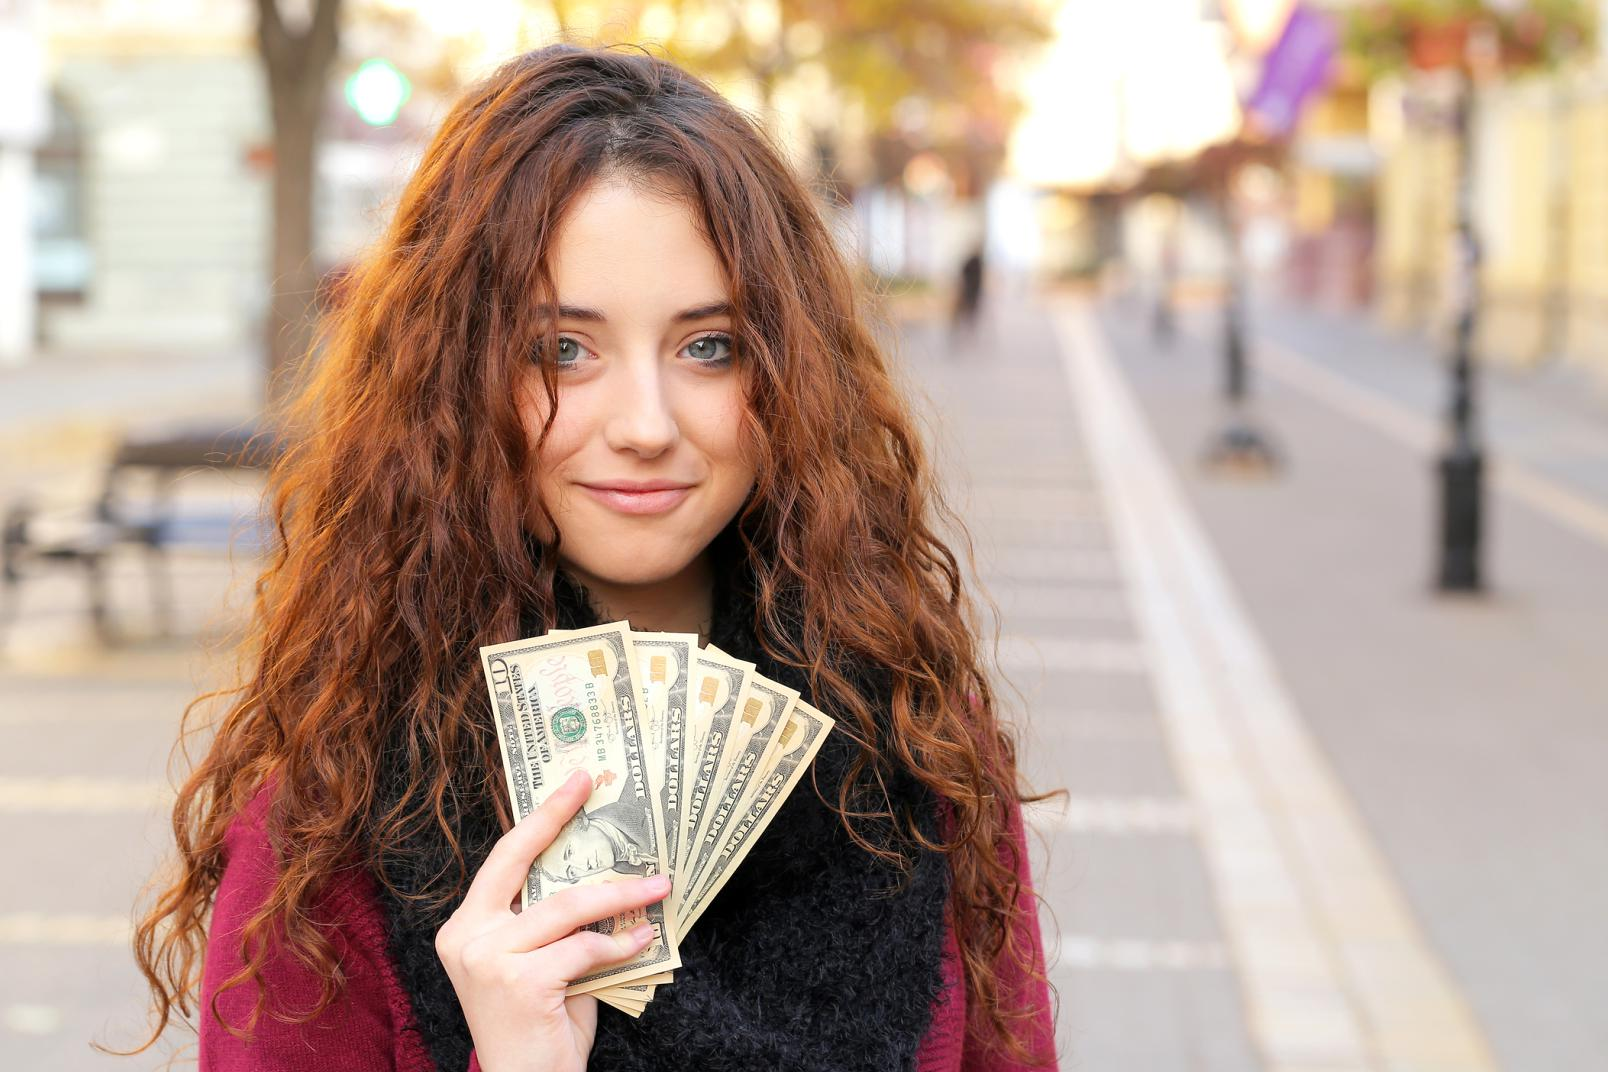 Best Way to Make Money as a Teenage Girl